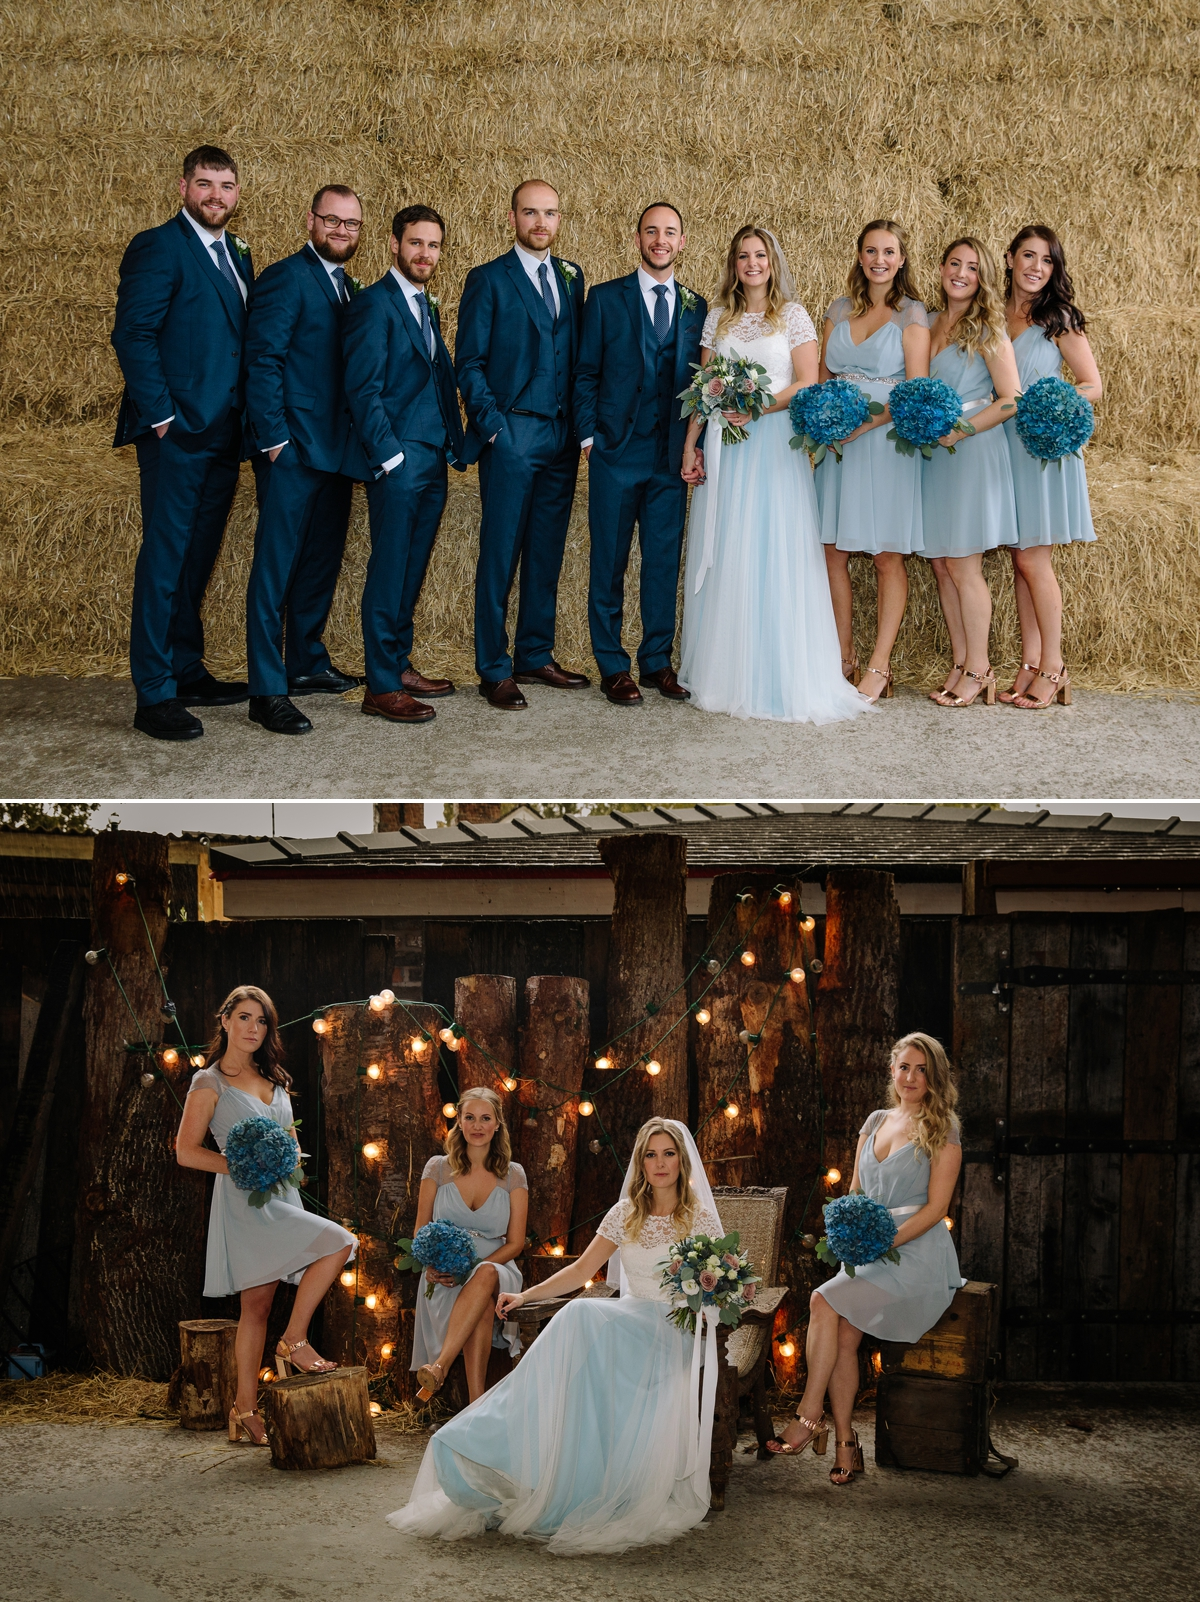 Bridal Party and Bride with her bridesmaids